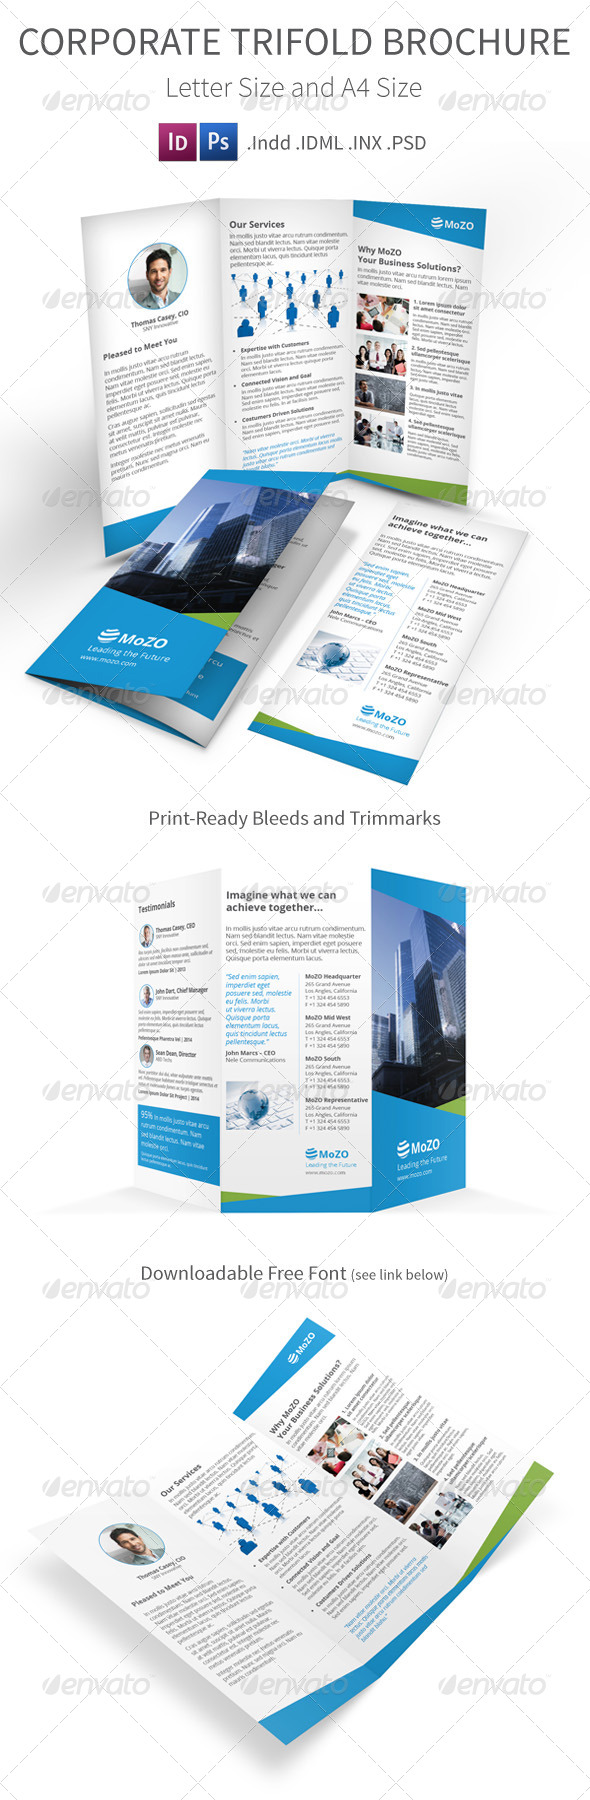 GraphicRiver Corporate Trifold Brochure A4 and Letter Size 7501152